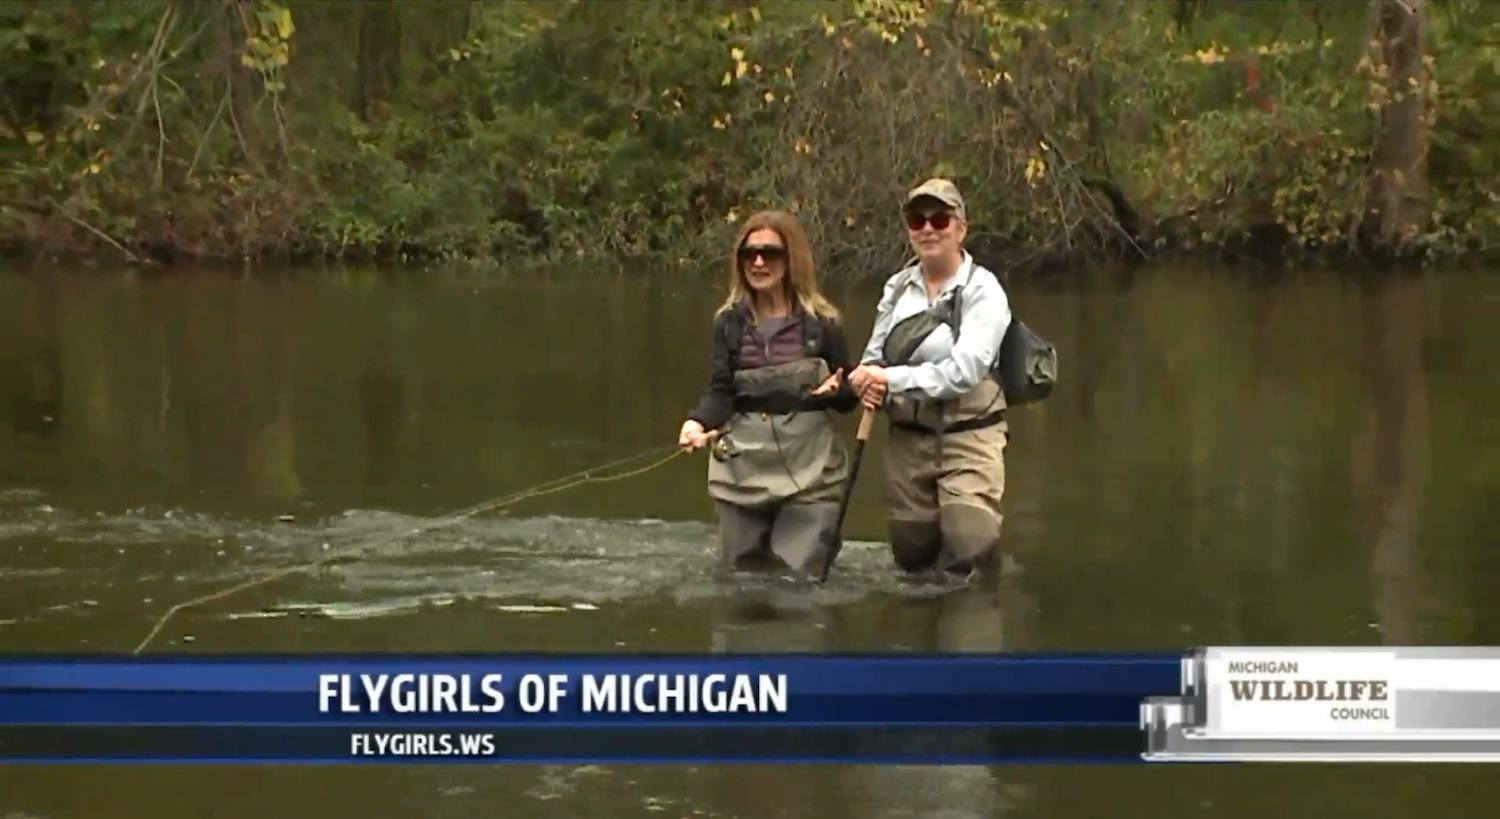 On the water with Flygirls of Michigan